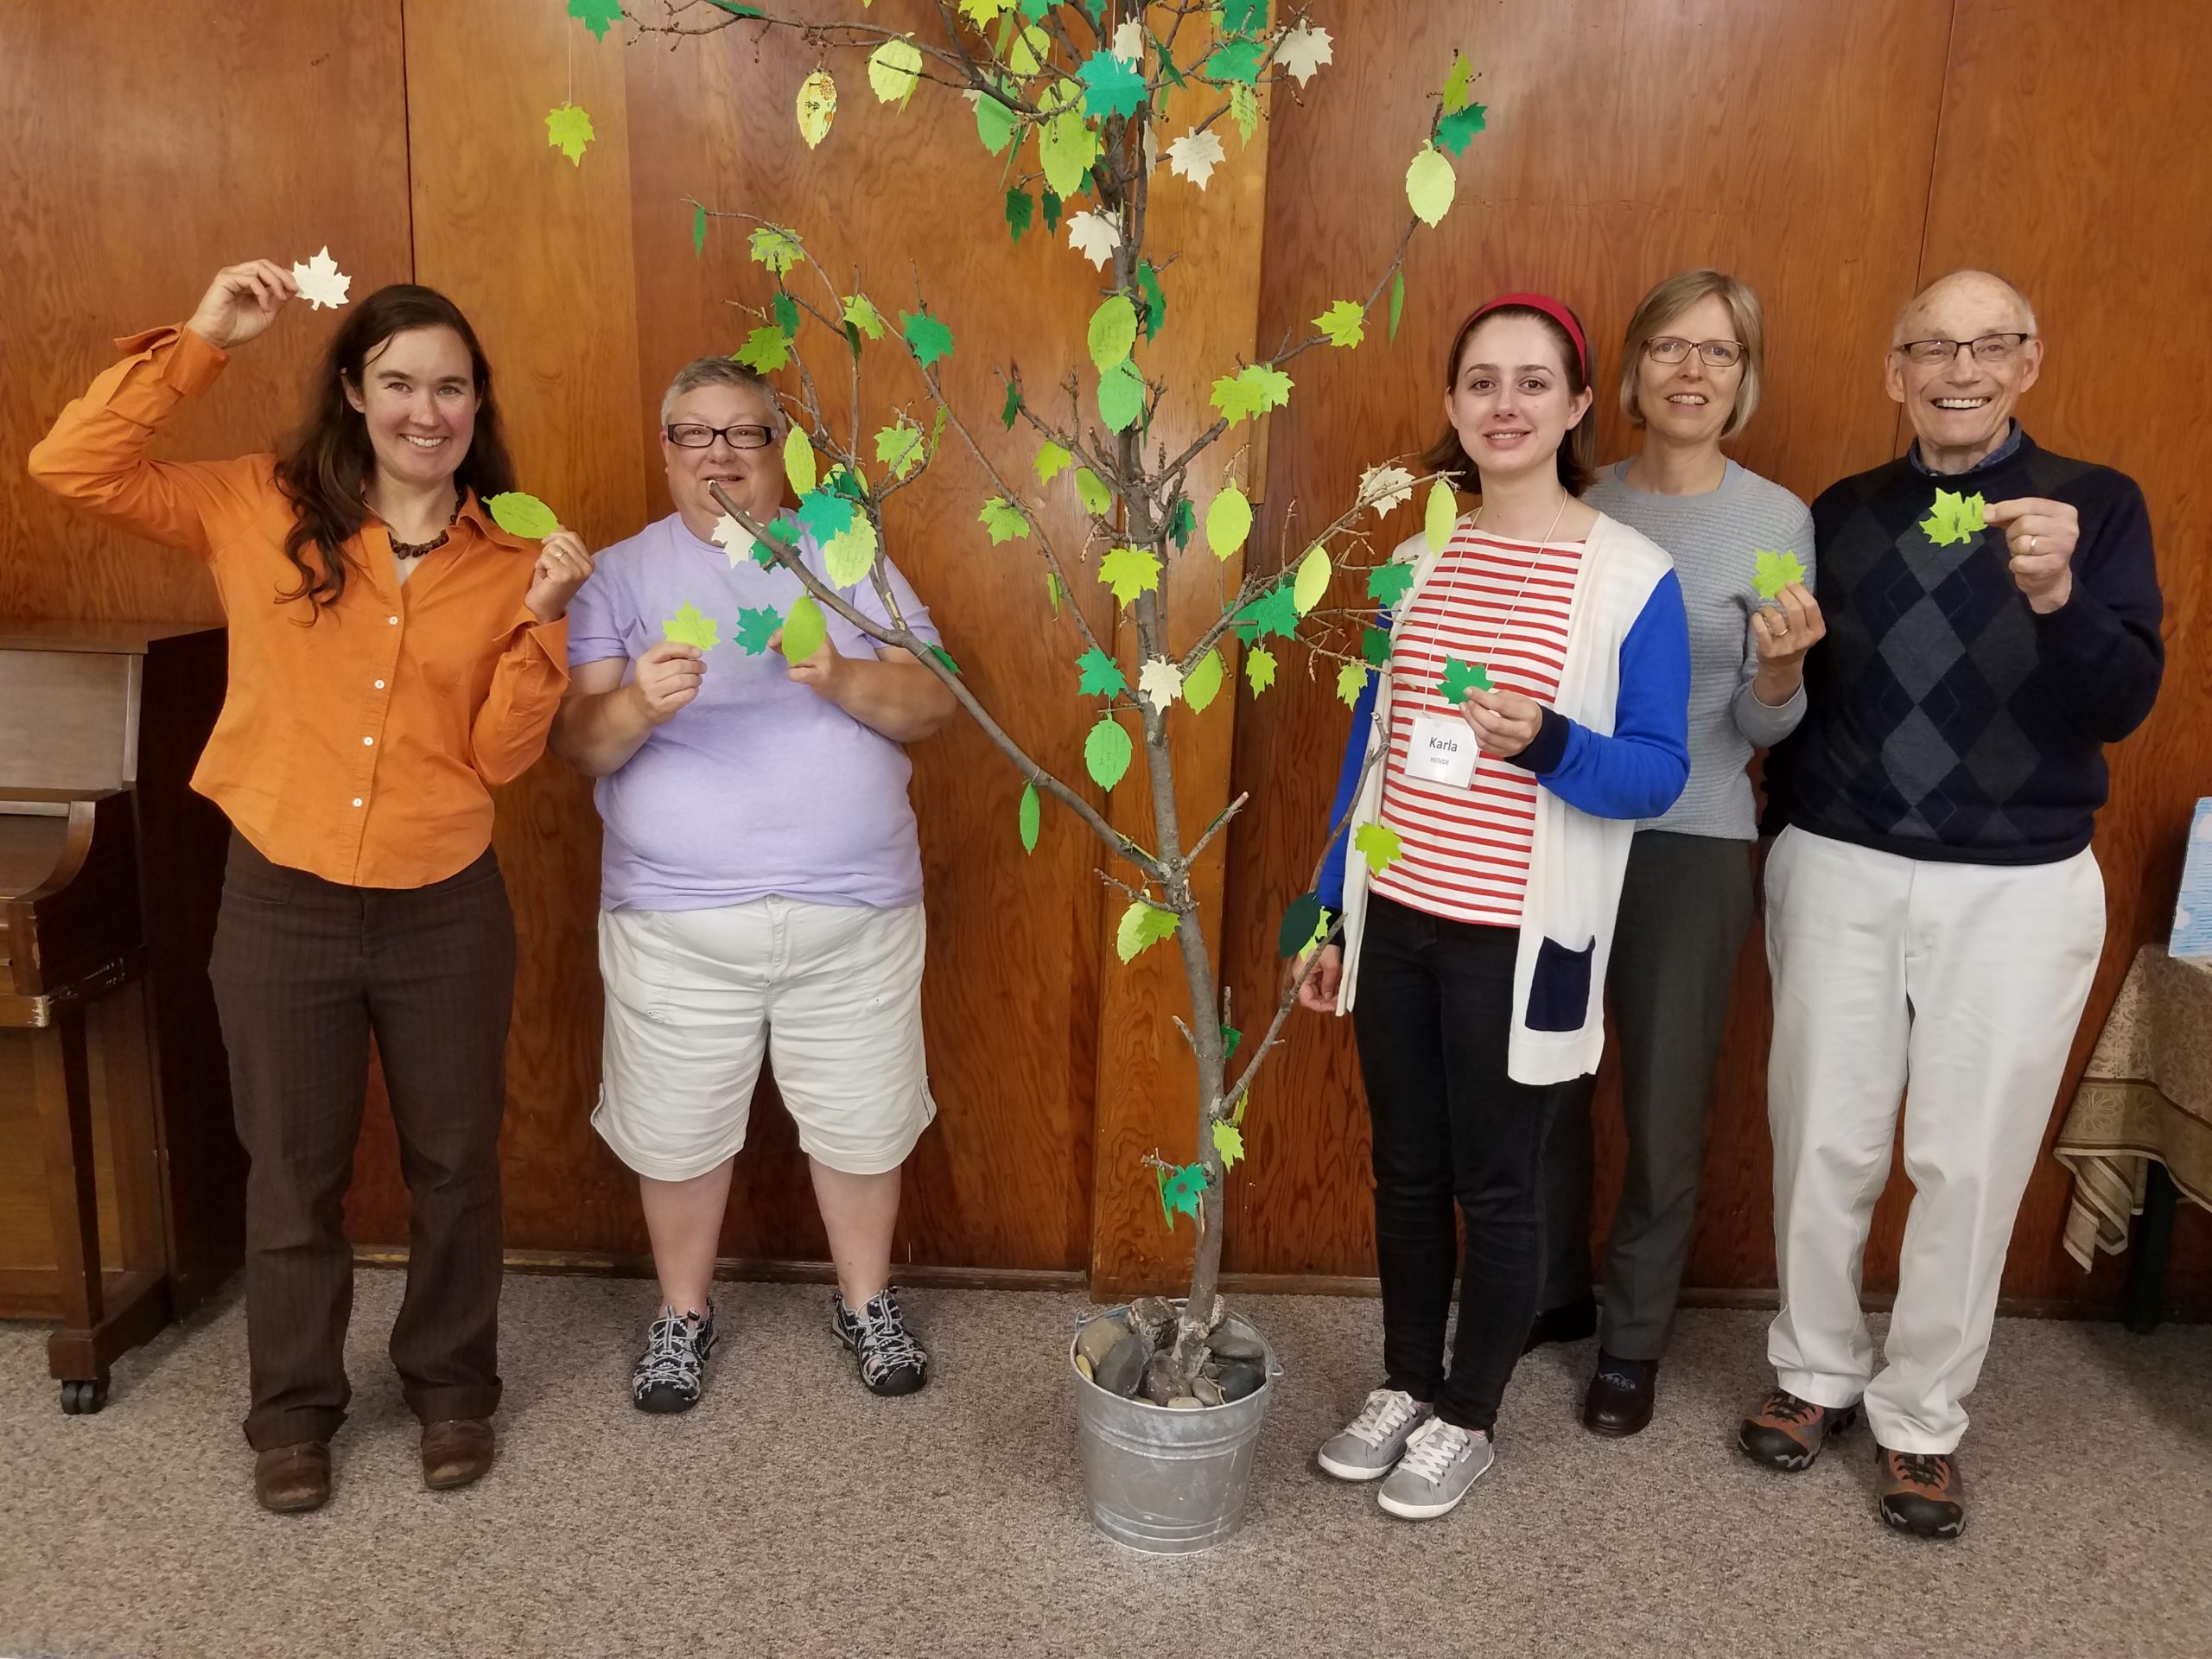 Members of the Eco-Justice Committee smile and hold paper leaves with creation care actions written on them.